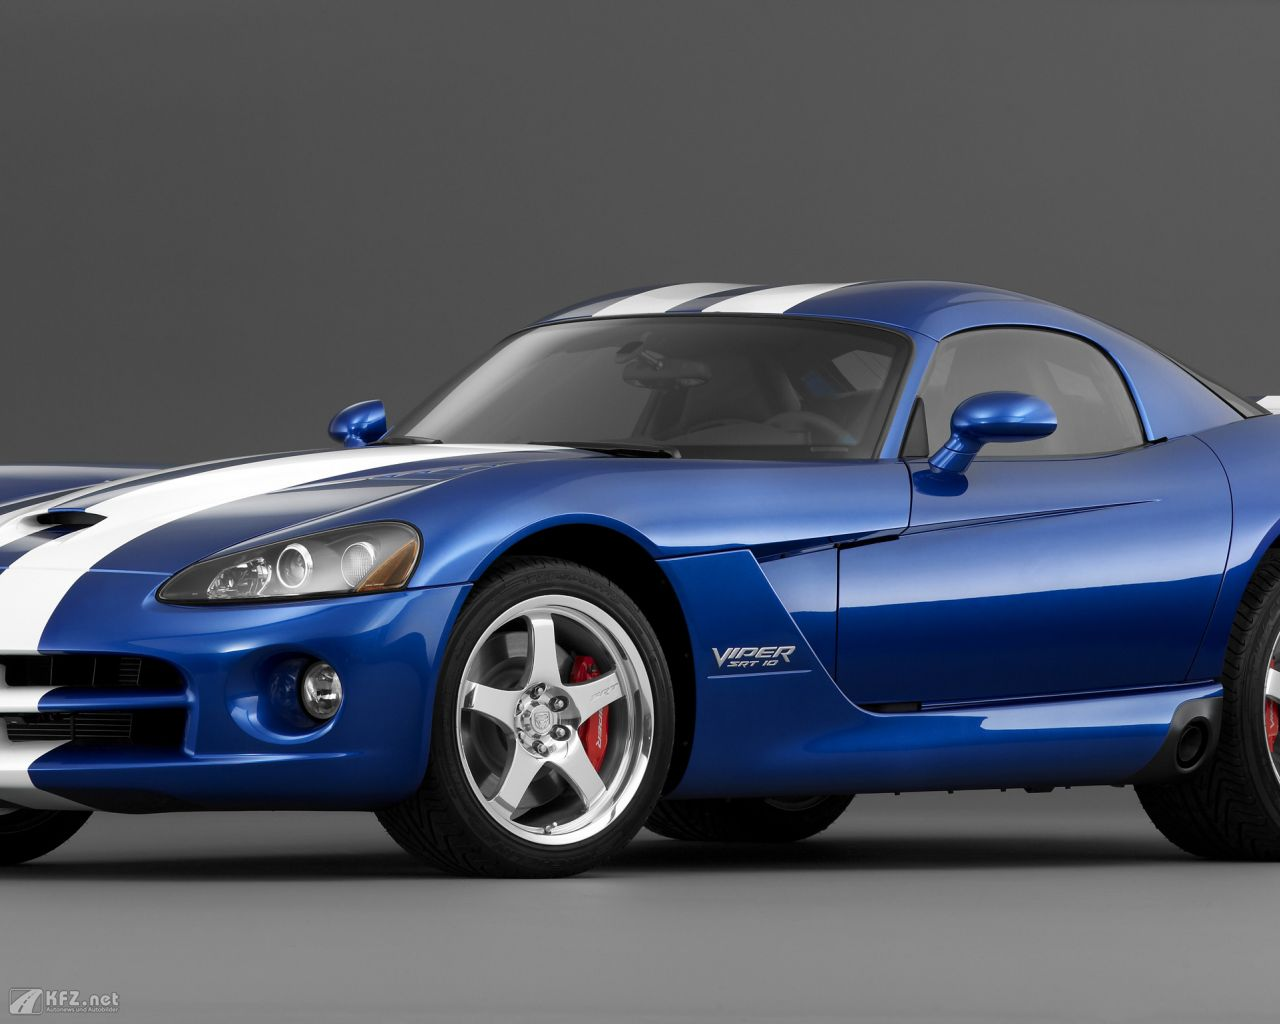 chrysler-dodge-viper-1280x1024-5